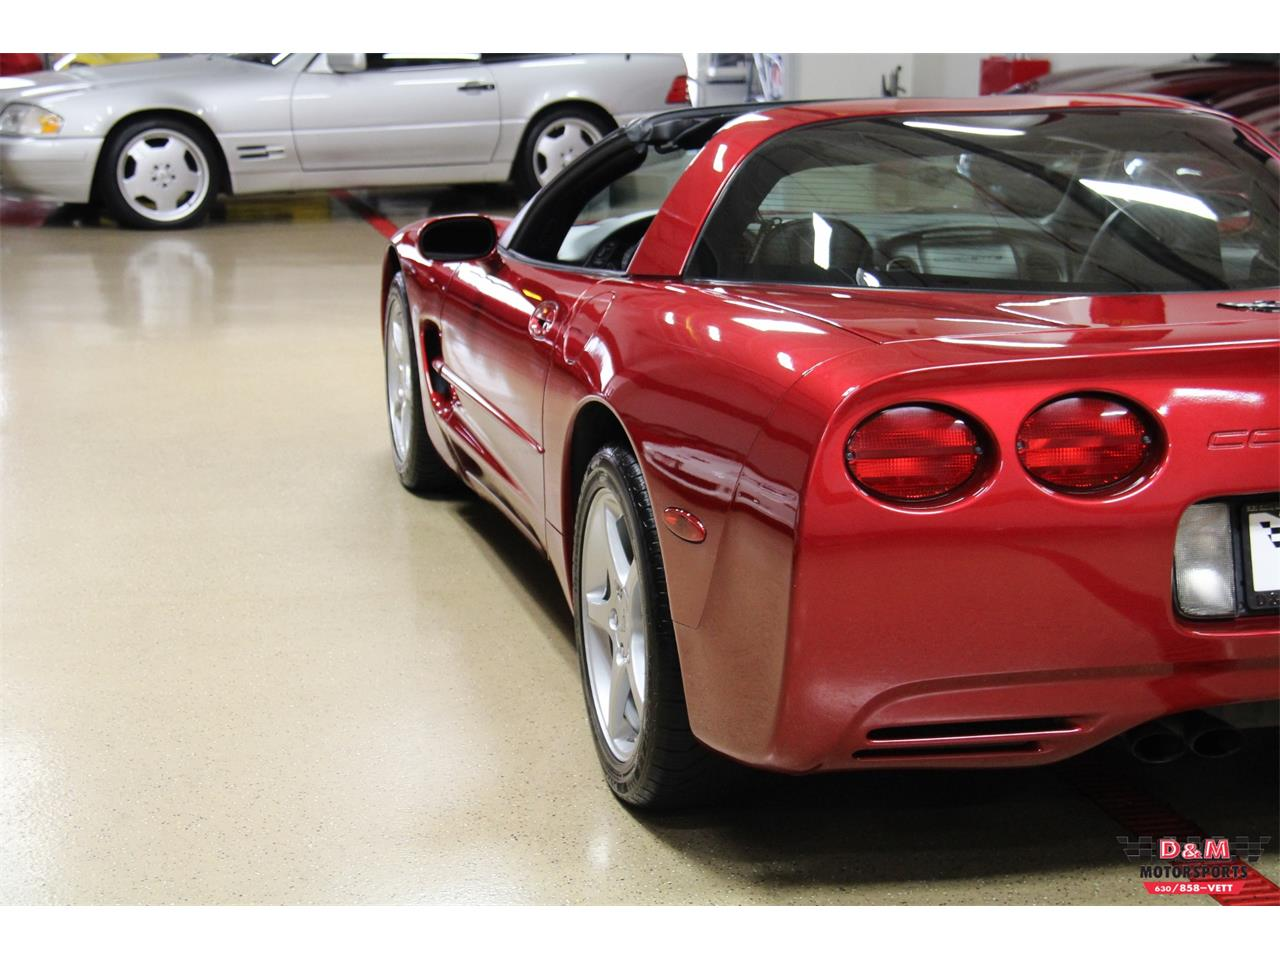 Large Picture of '00 Corvette located in Illinois Offered by D & M Motorsports - LVA3